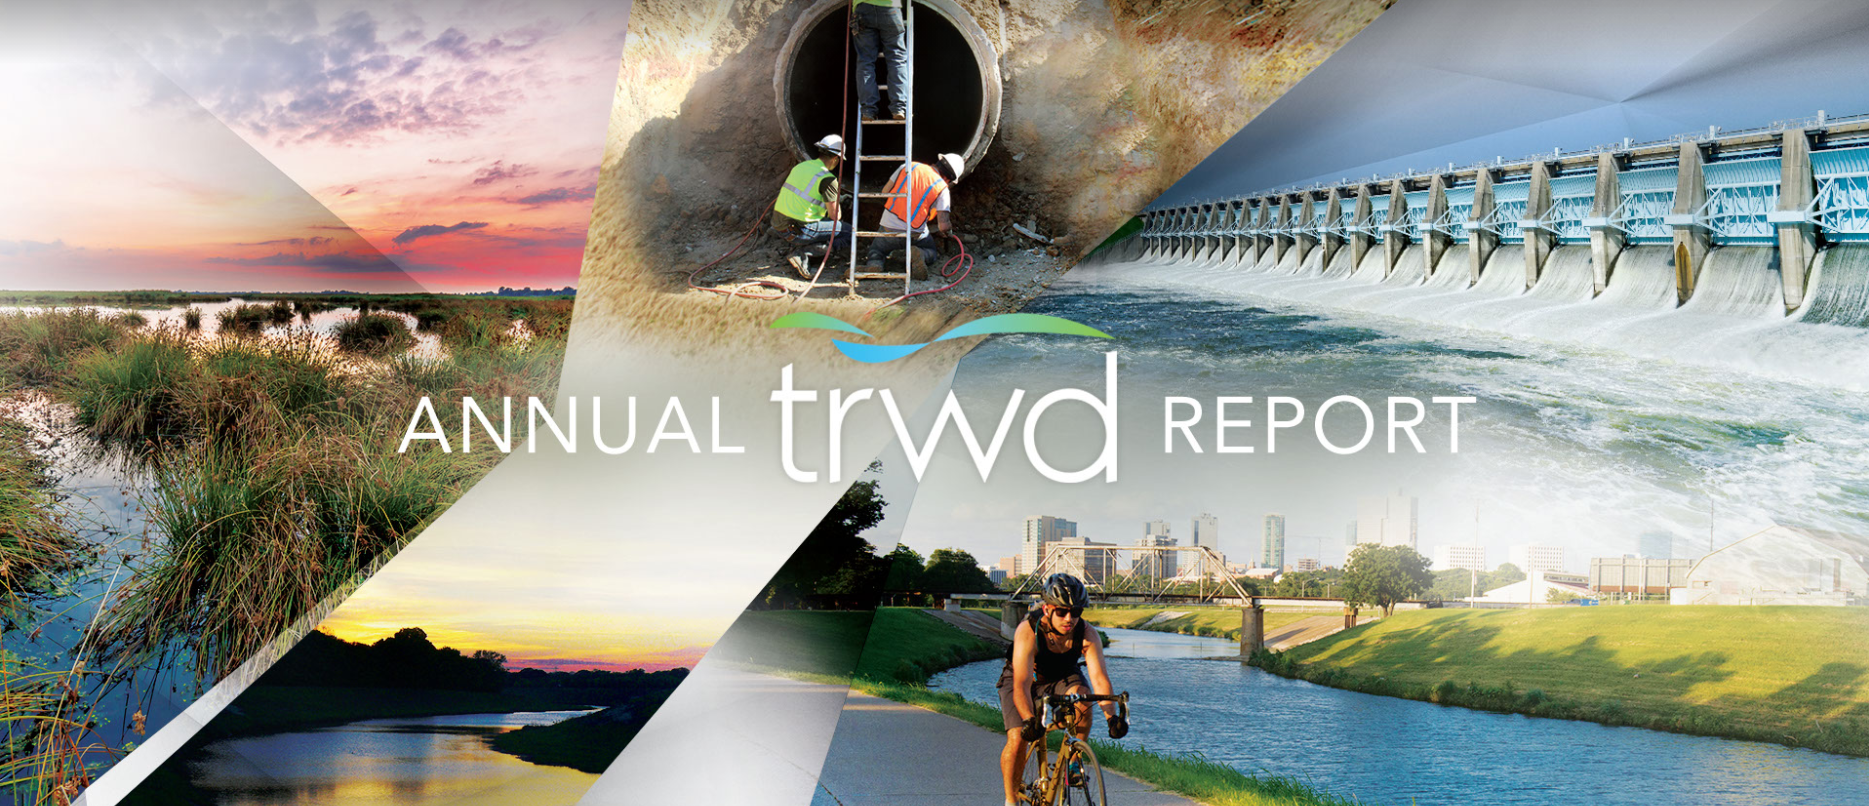 TRWD Annual Report Now Available